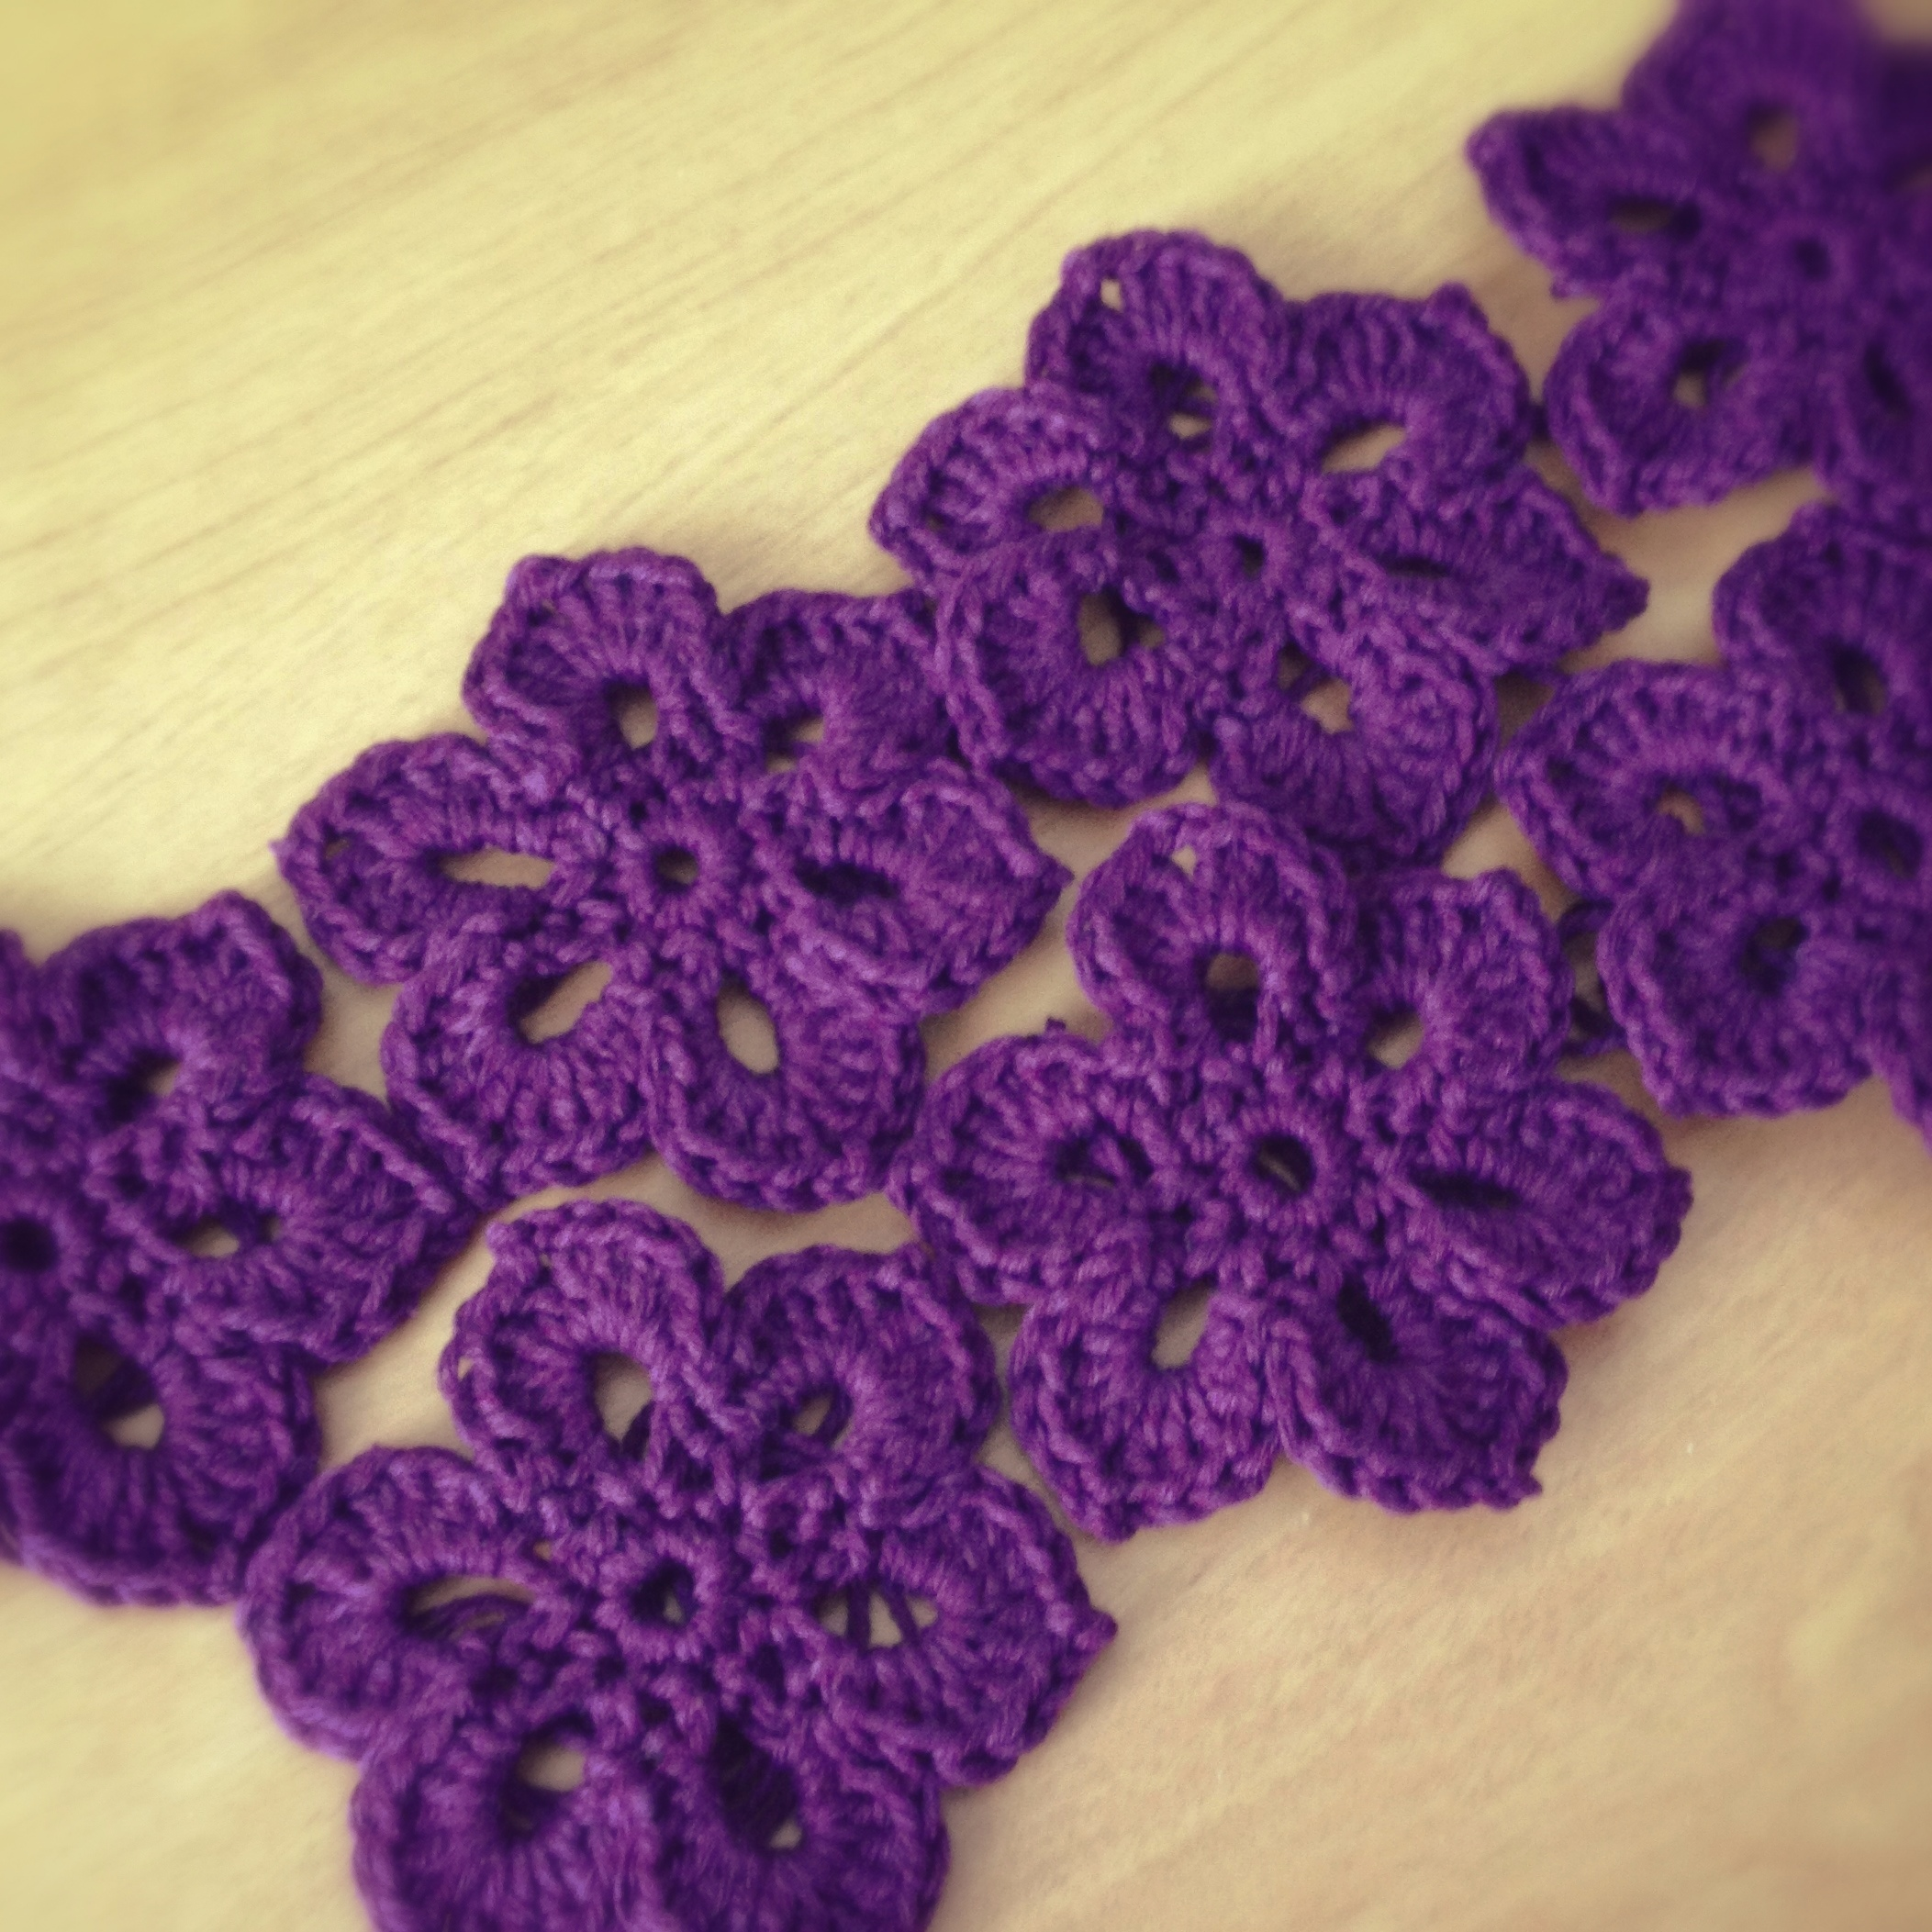 How To Crochet A Scarf : Crochet Motif Flower for Scarf Deux Brins de Maille